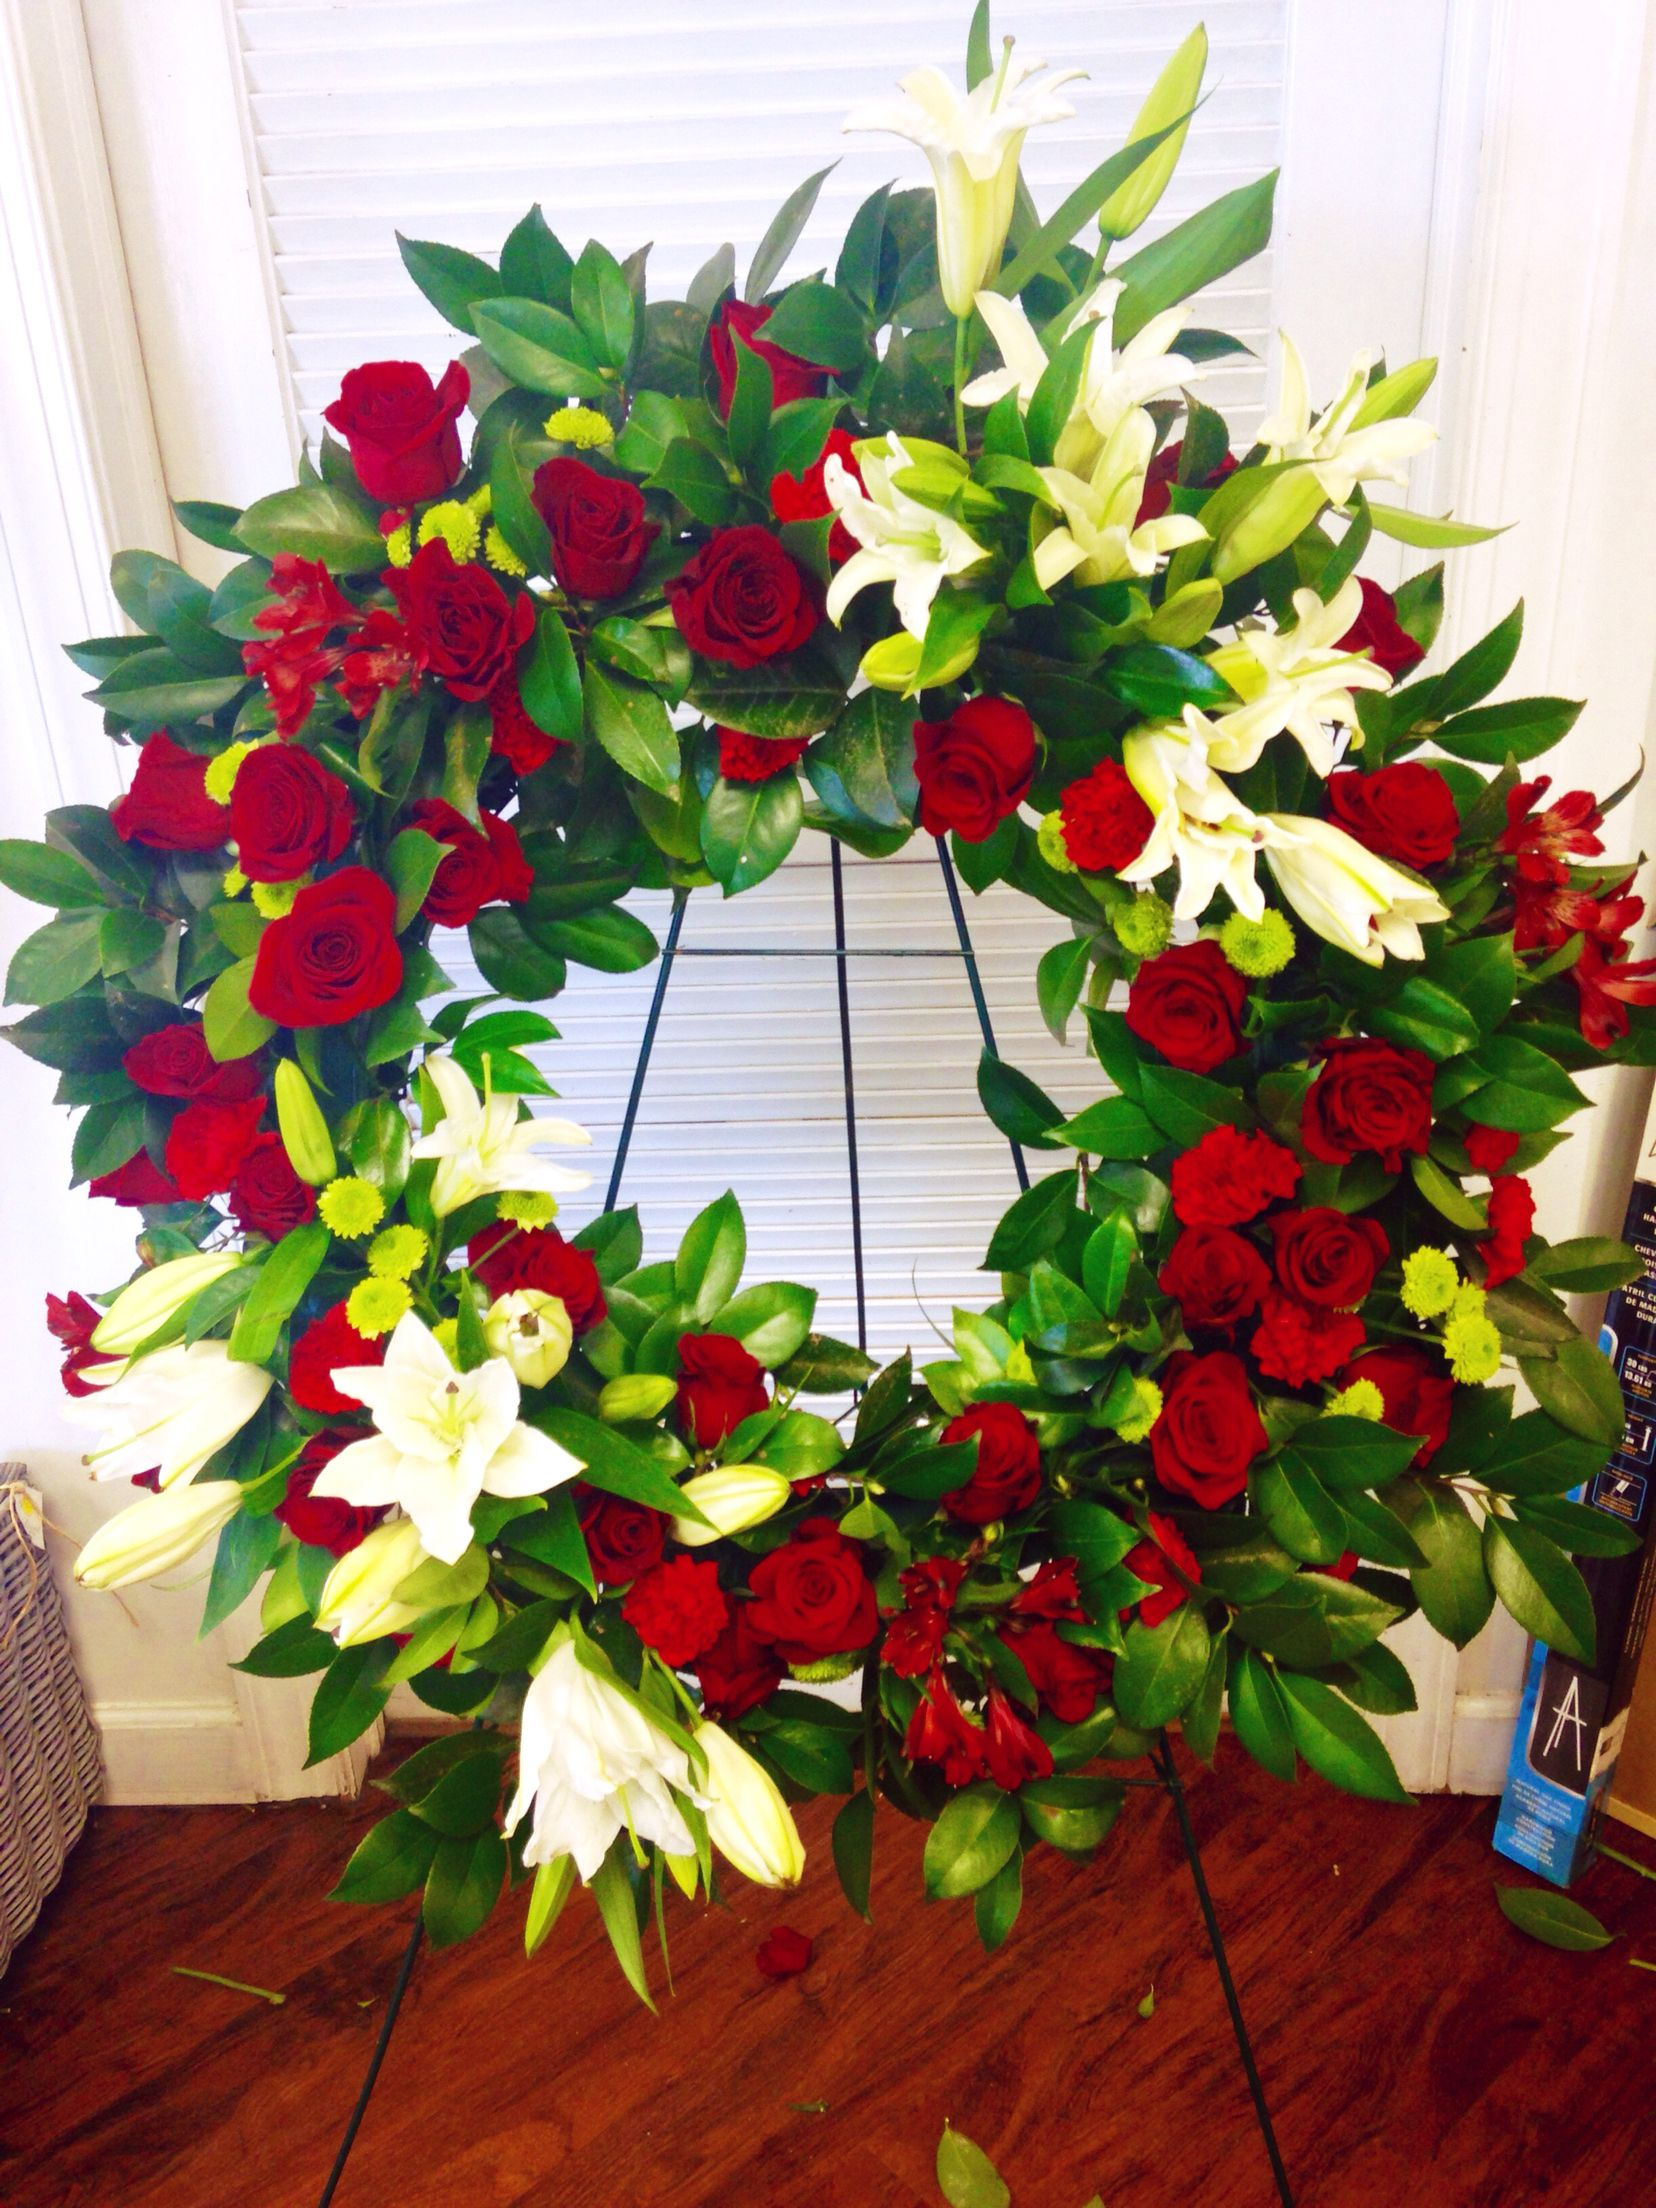 Open wreath by colonial house of flowers at joiner anderson funeral open wreath by colonial house of flowers at joiner anderson funeral home izmirmasajfo Choice Image